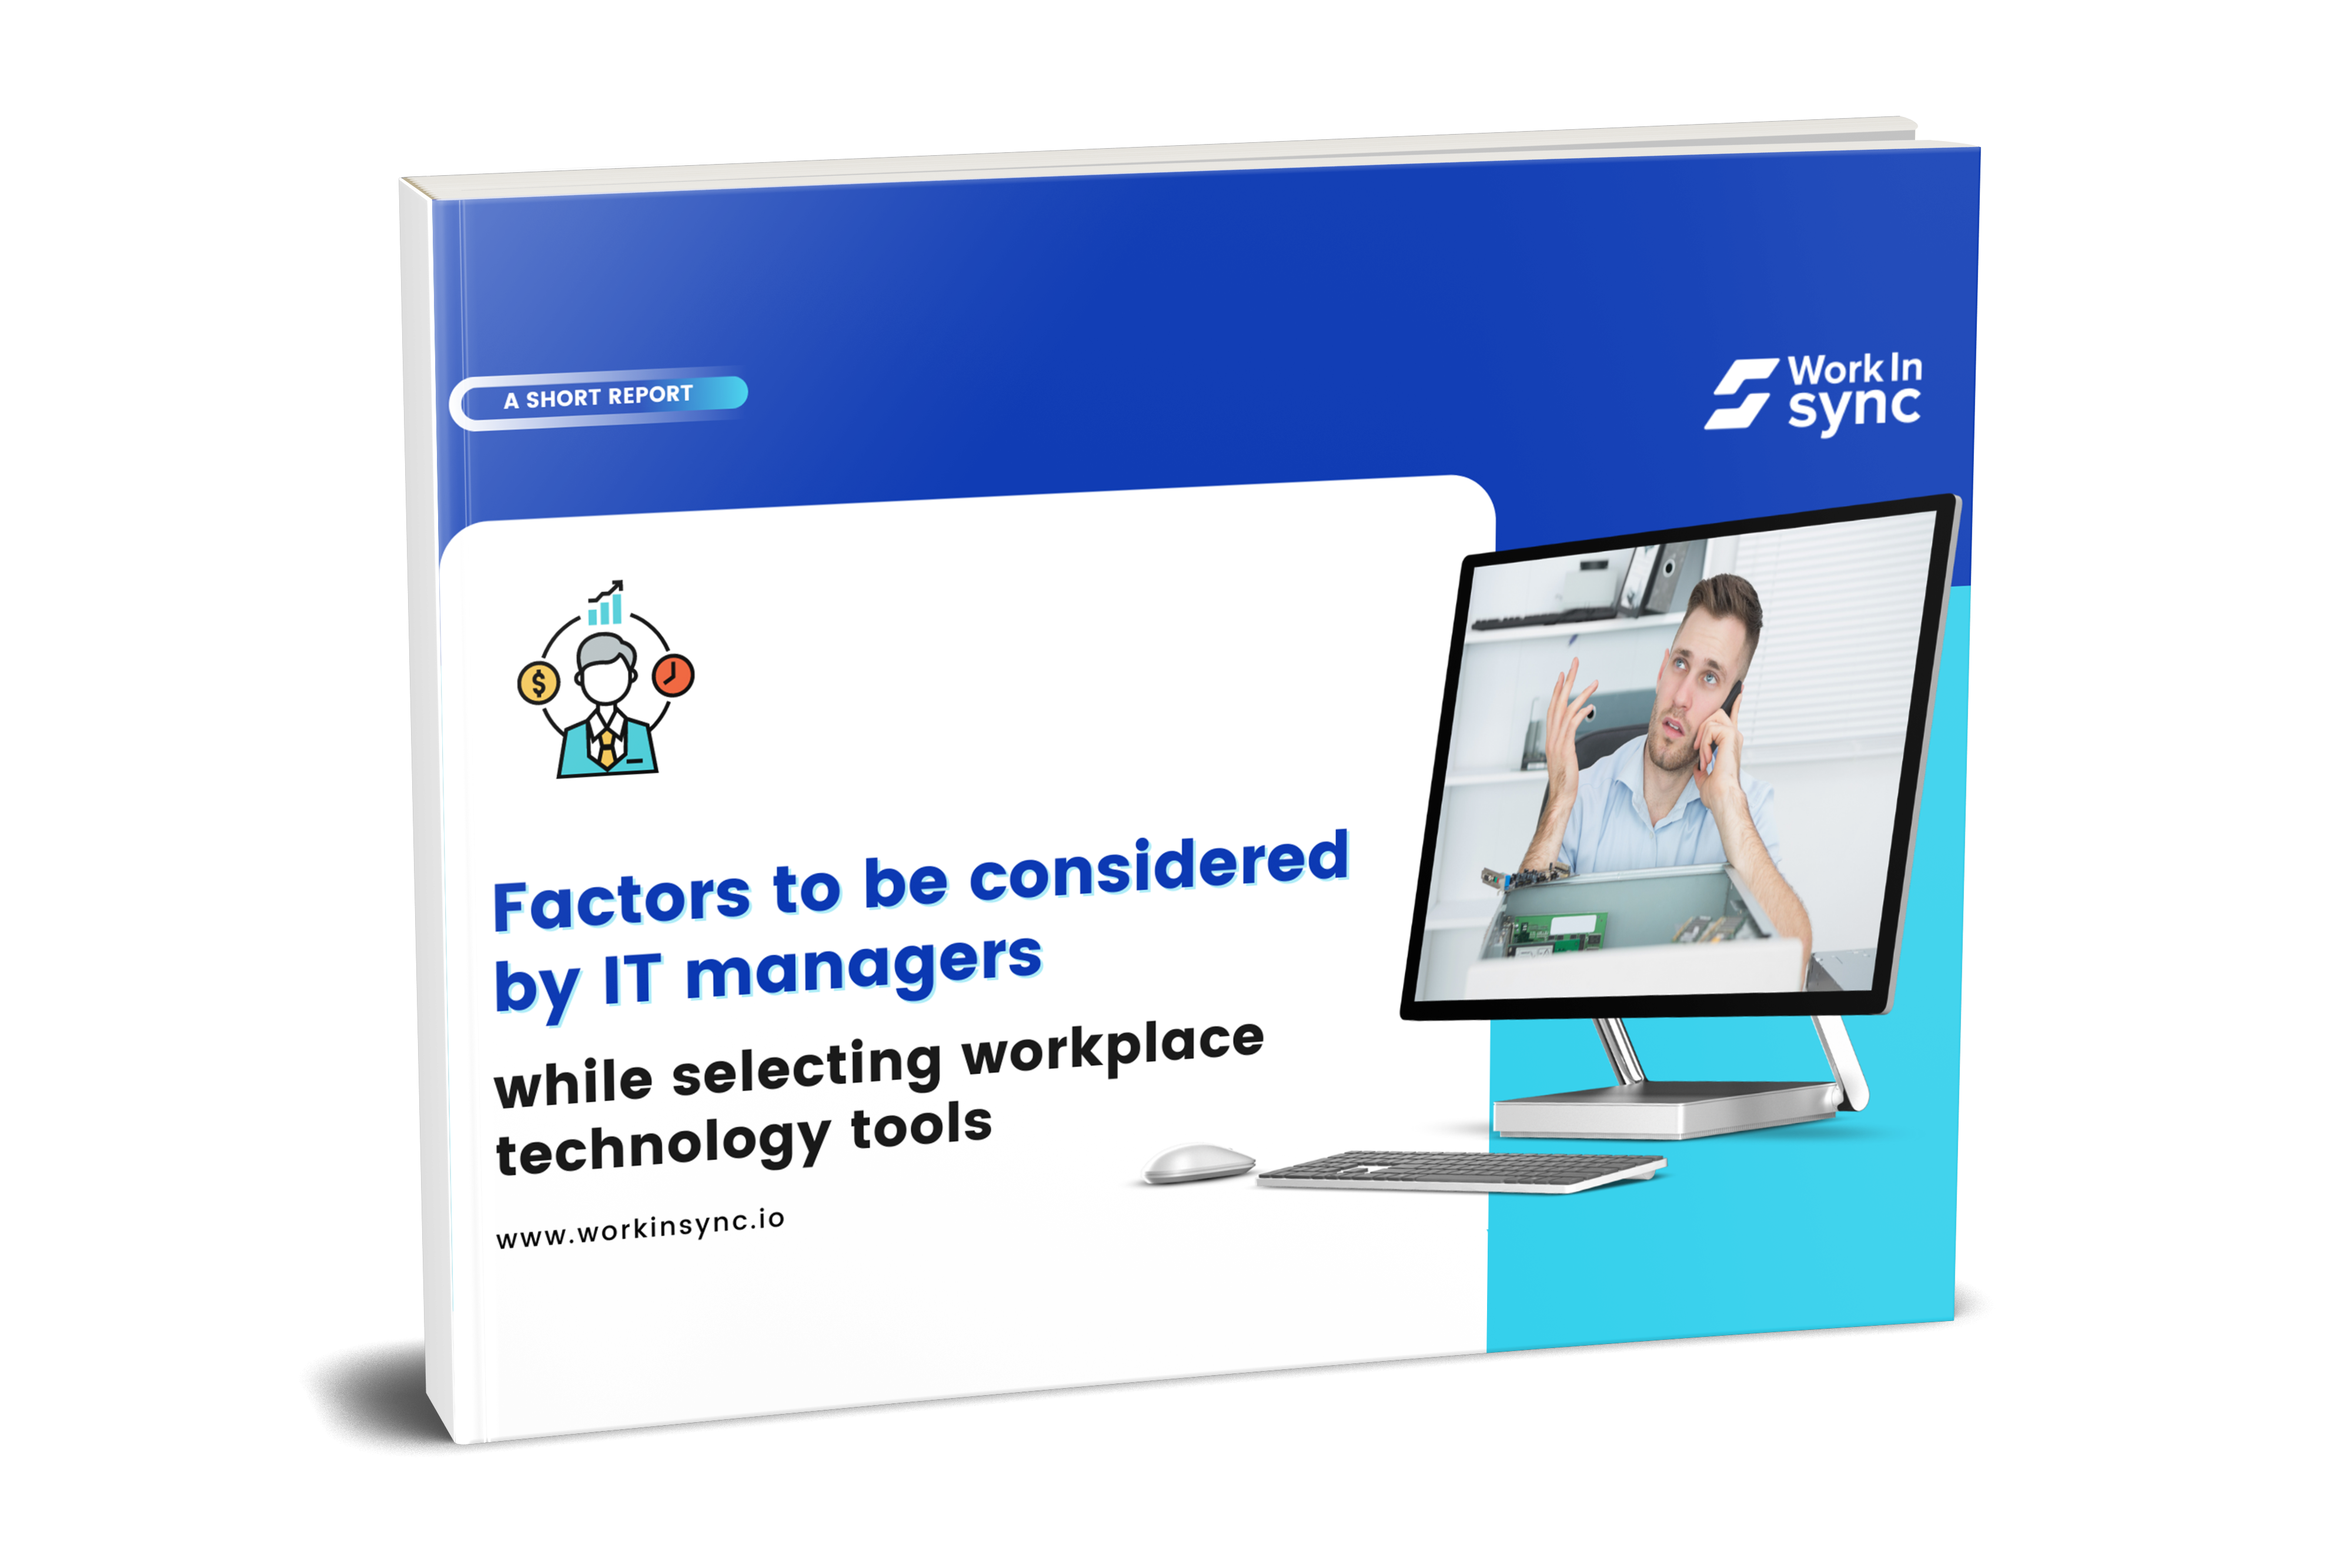 Consider These When Choosing Workplace Technology Tools 3D Image